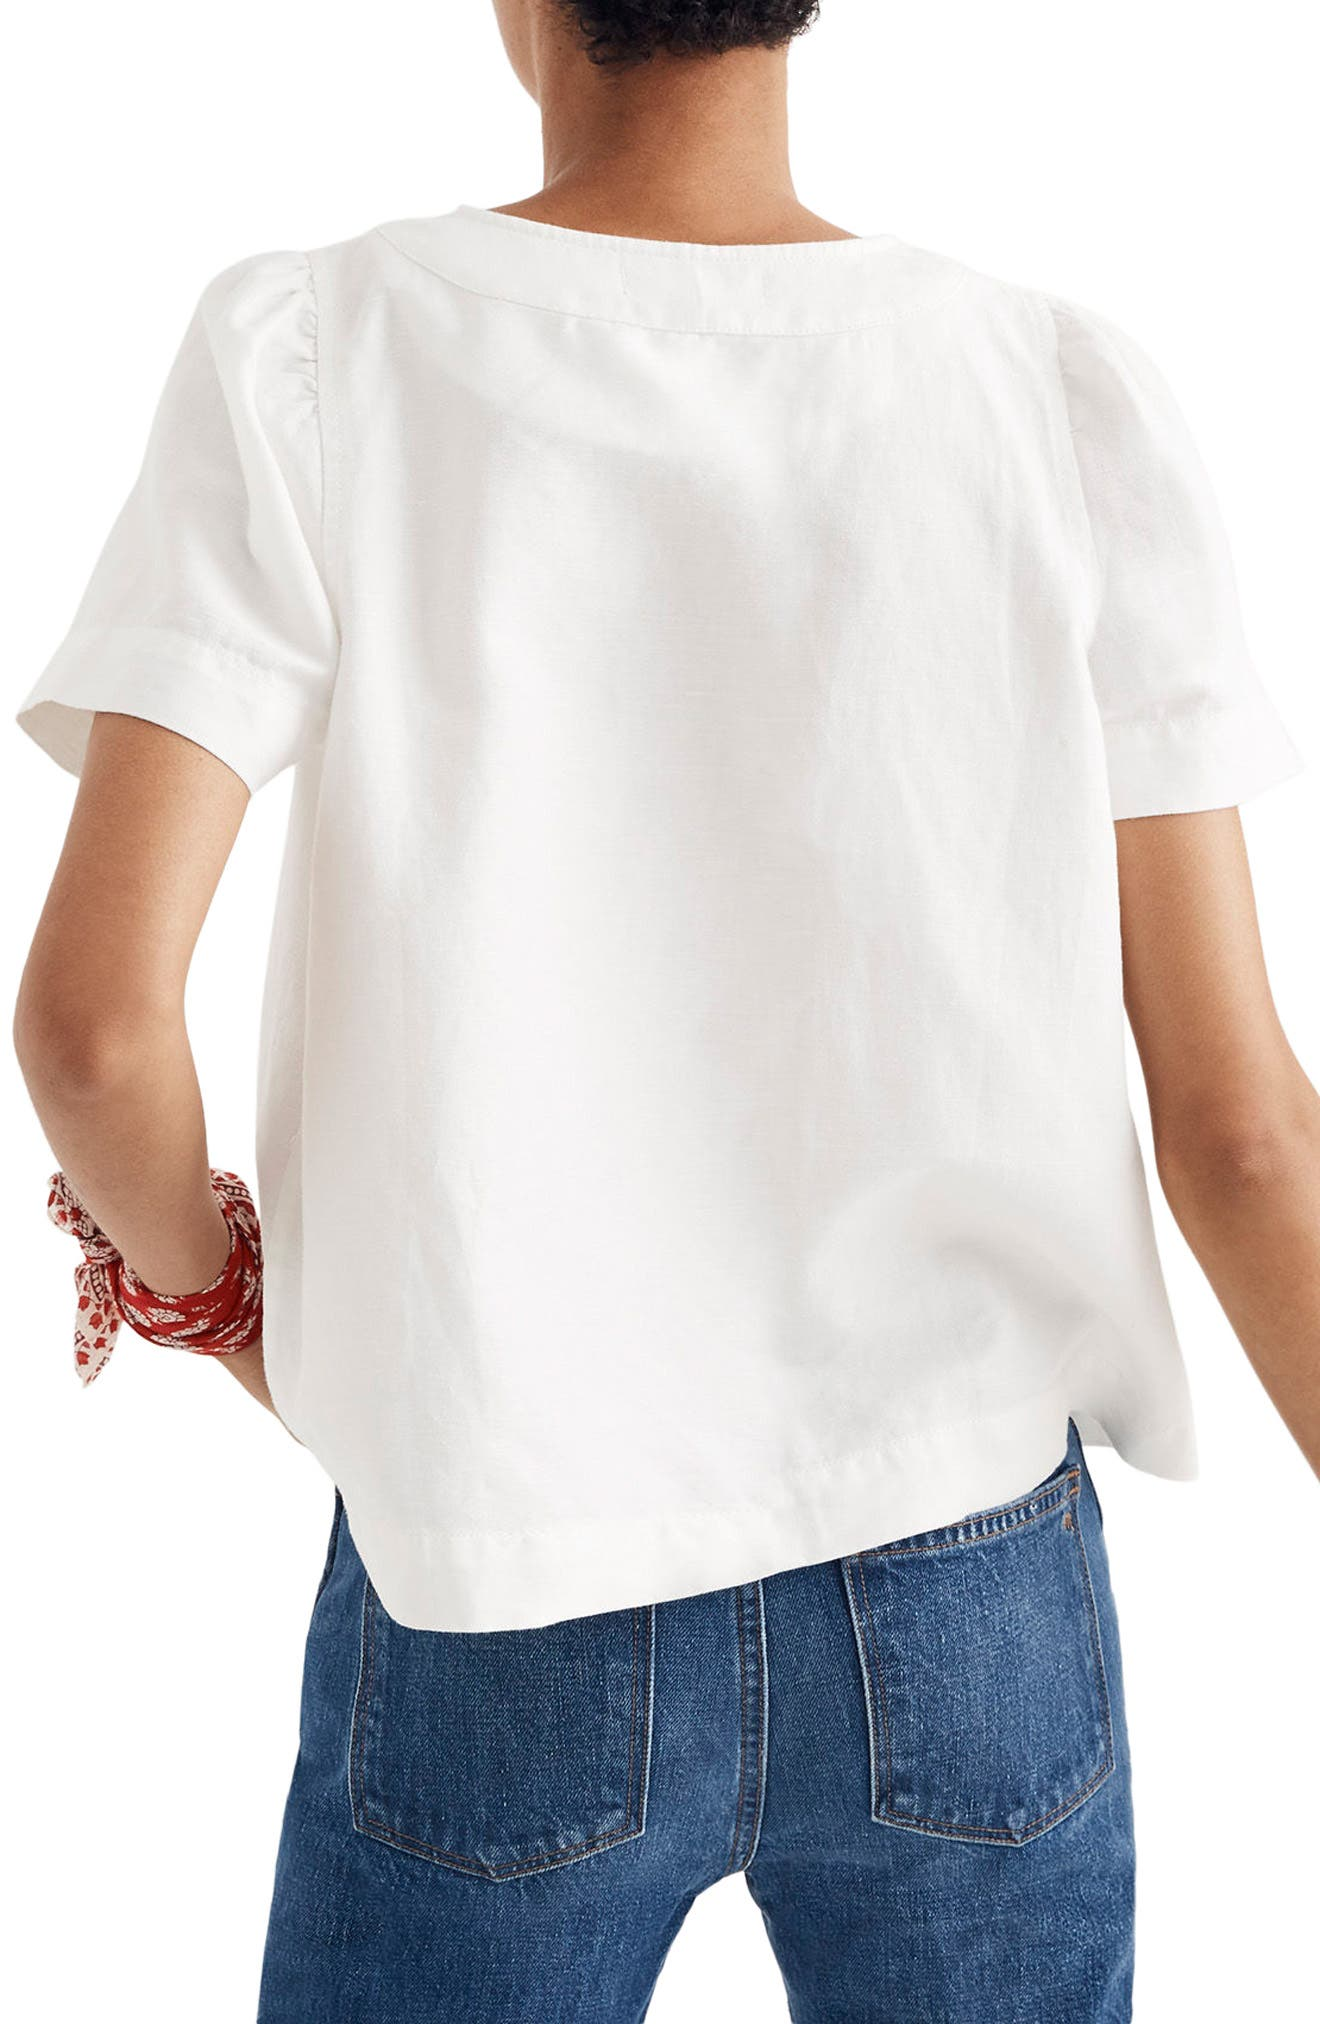 Popover Swing Top,                             Alternate thumbnail 2, color,                             Pure White